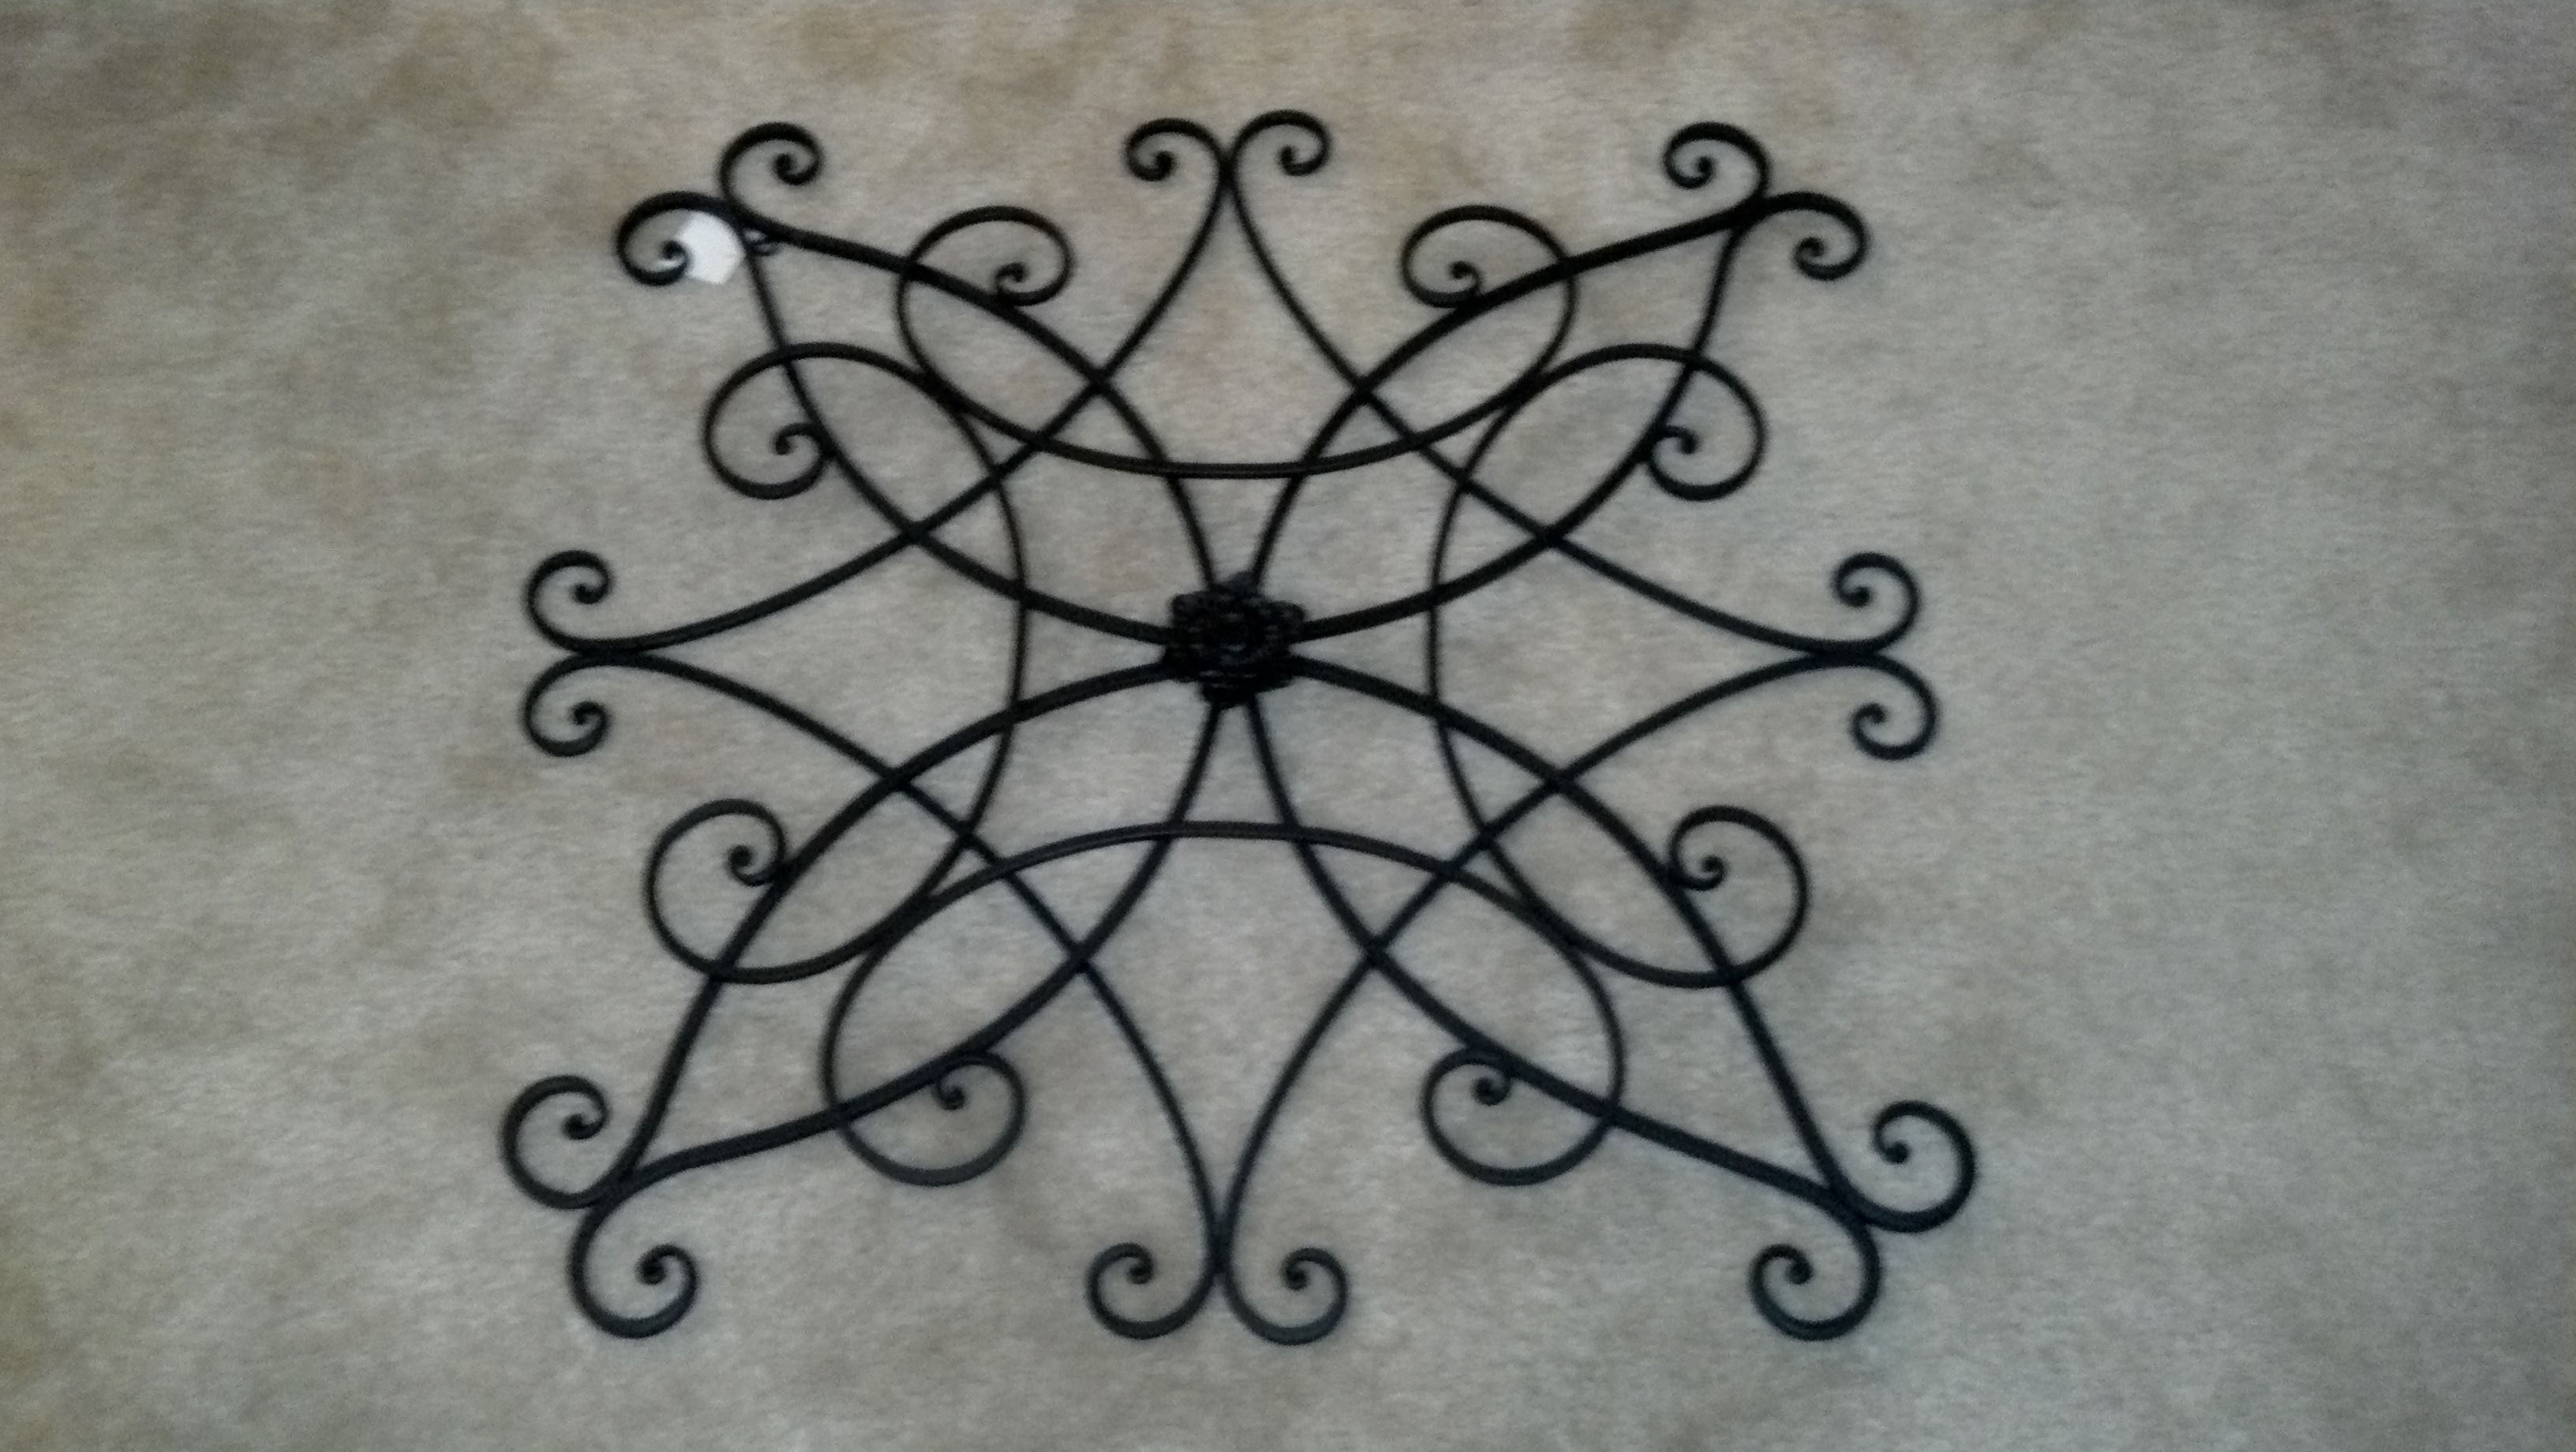 Wrought Iron Decor | Figuras De Metal | Pinterest | Iron Decor Intended For Latest Wrought Iron Wall Art (View 15 of 15)